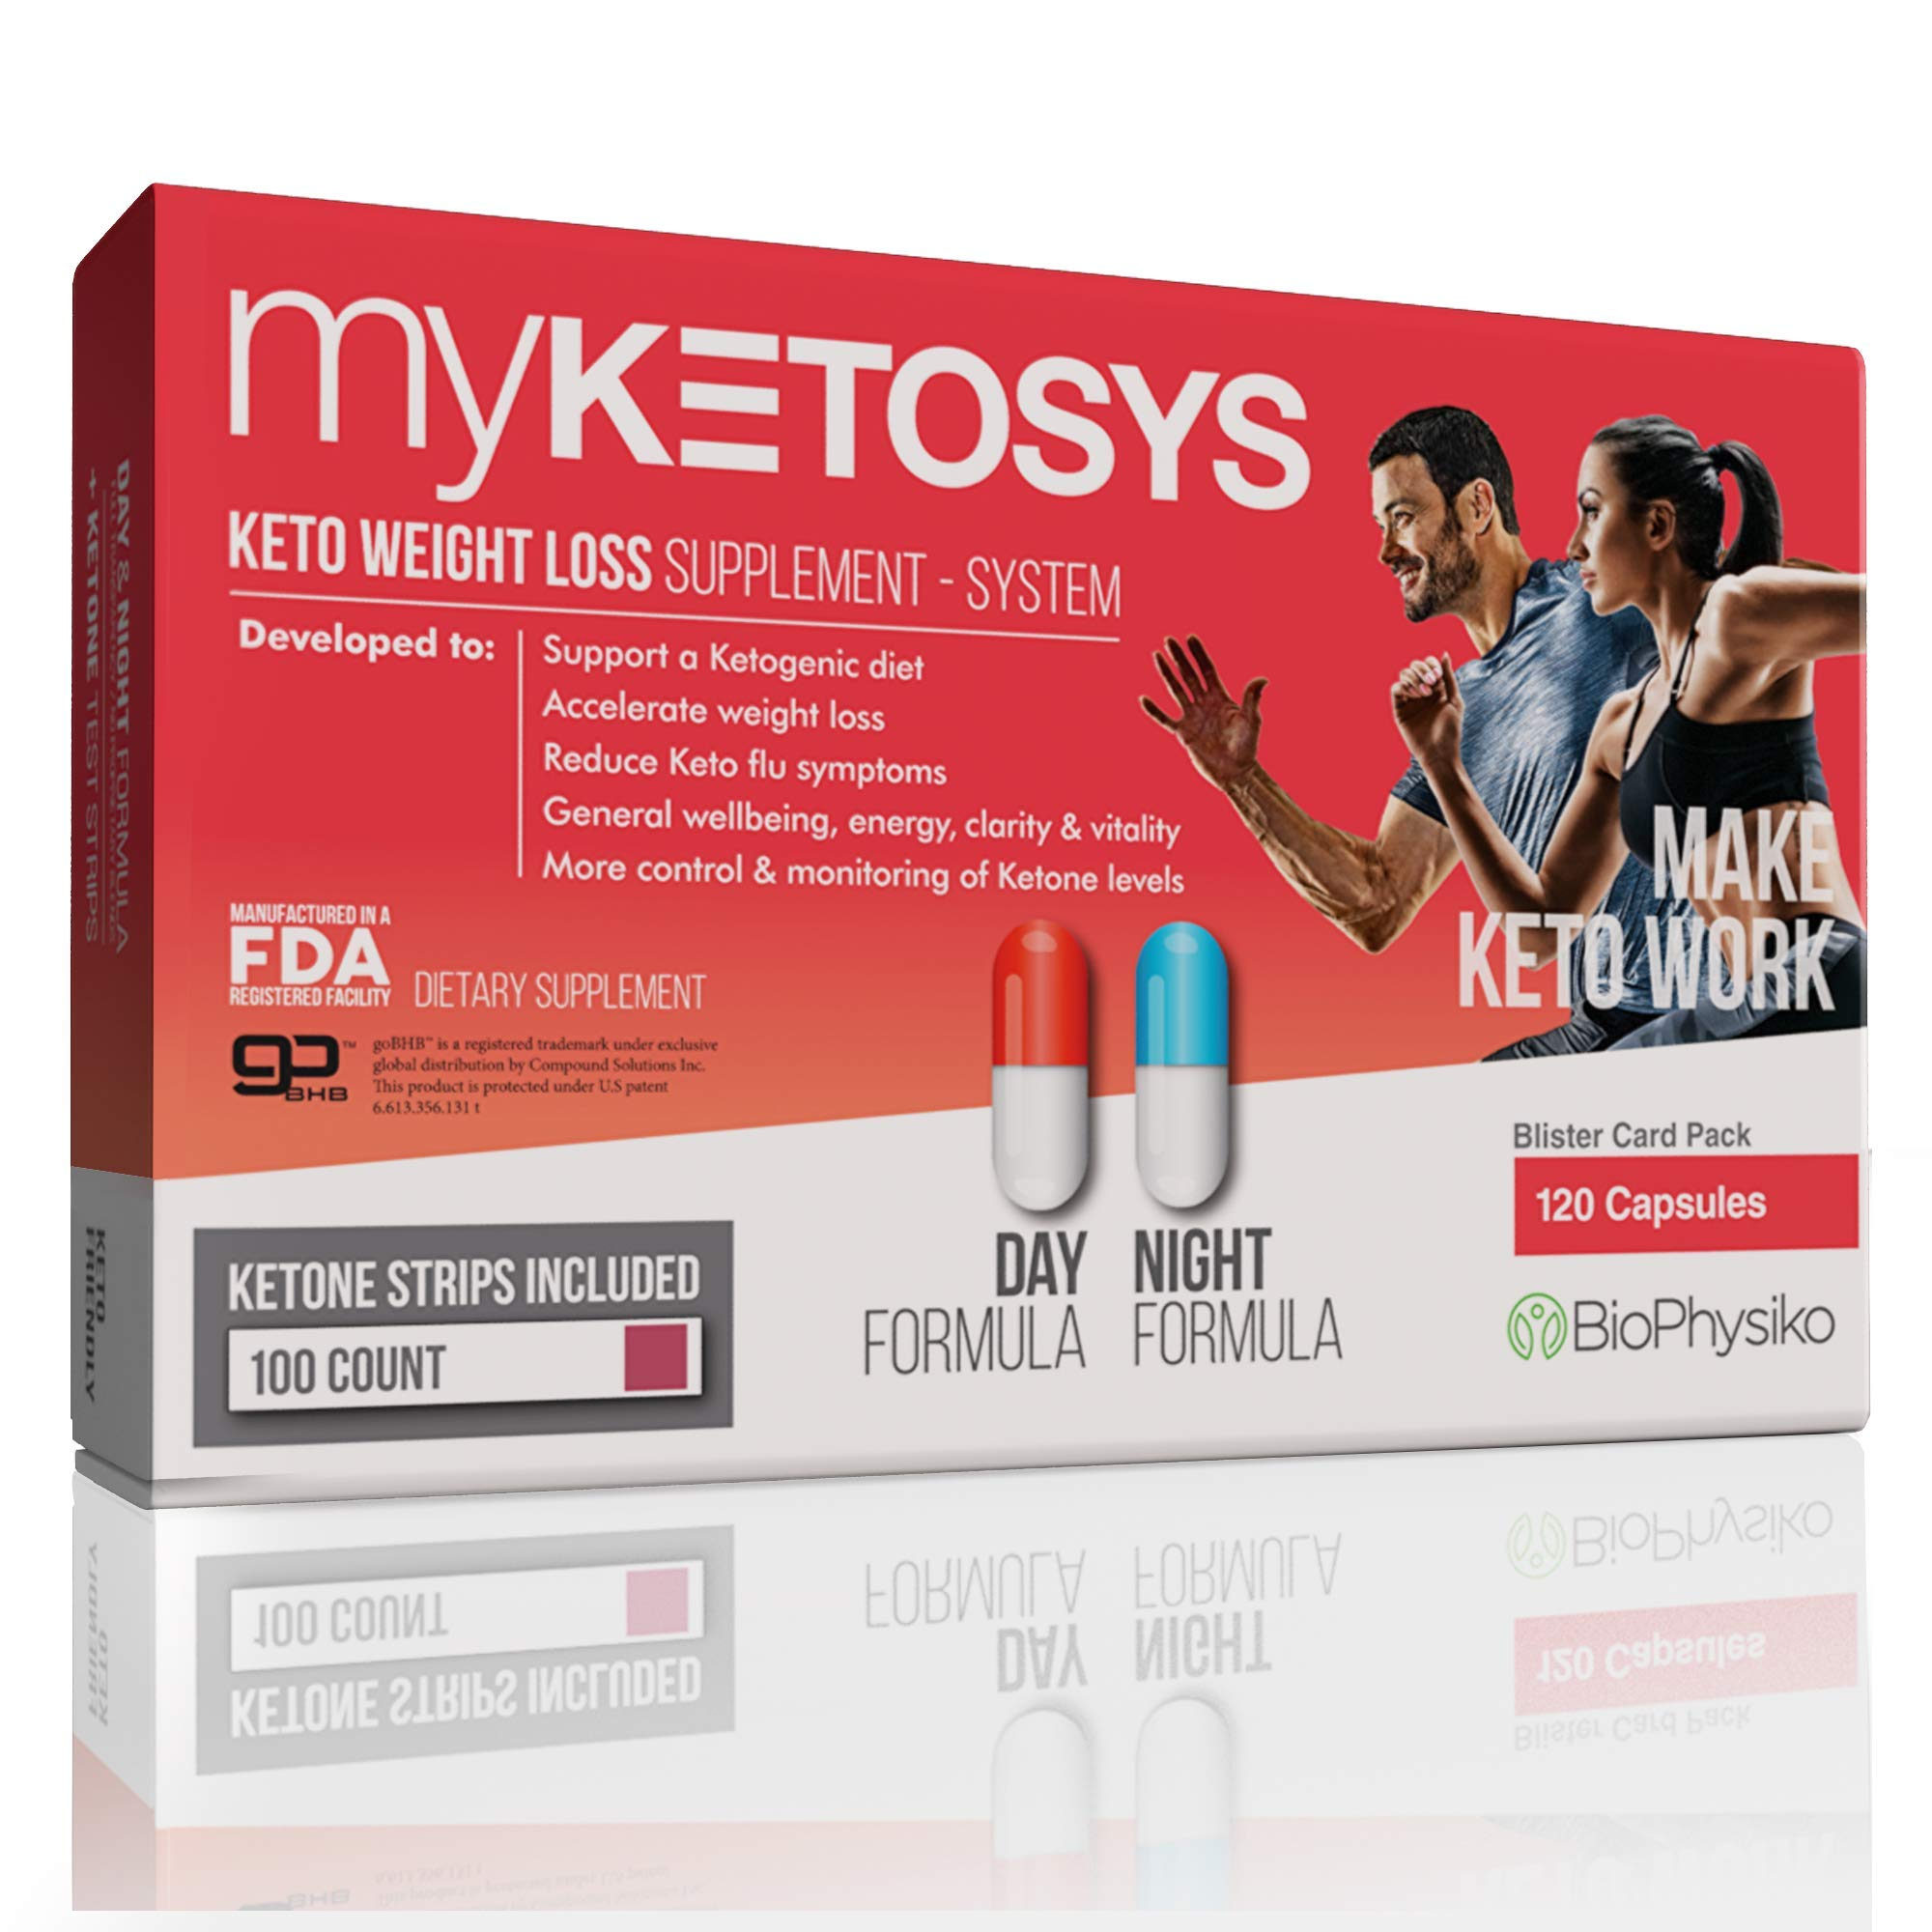 MYKETOSYS | 2019 Best Keto Weight Loss Pills for Women & Men. The Only Day & Night Formula Keto Fat Burner Pills plus Ketone Strips. A Complete Keto Supplement for Ketosis with GoBHB Exogenous Ketones